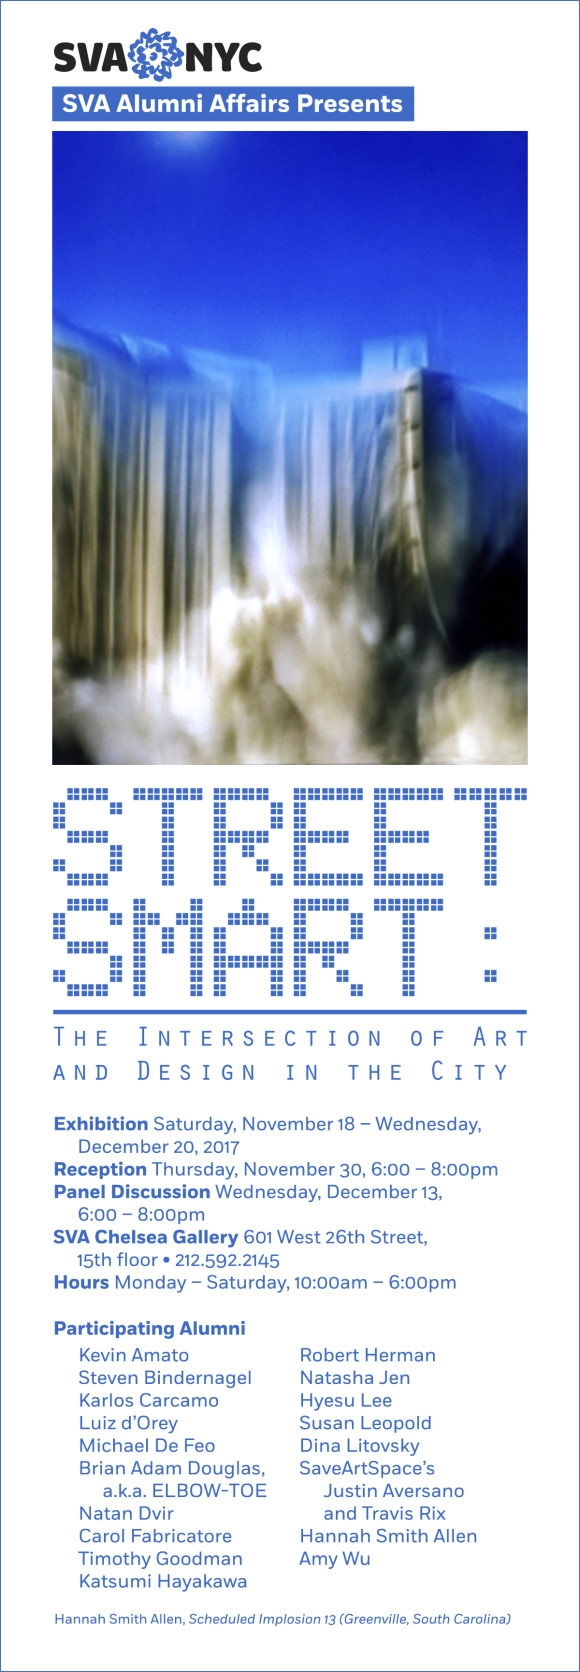 Poster for the event Street smart